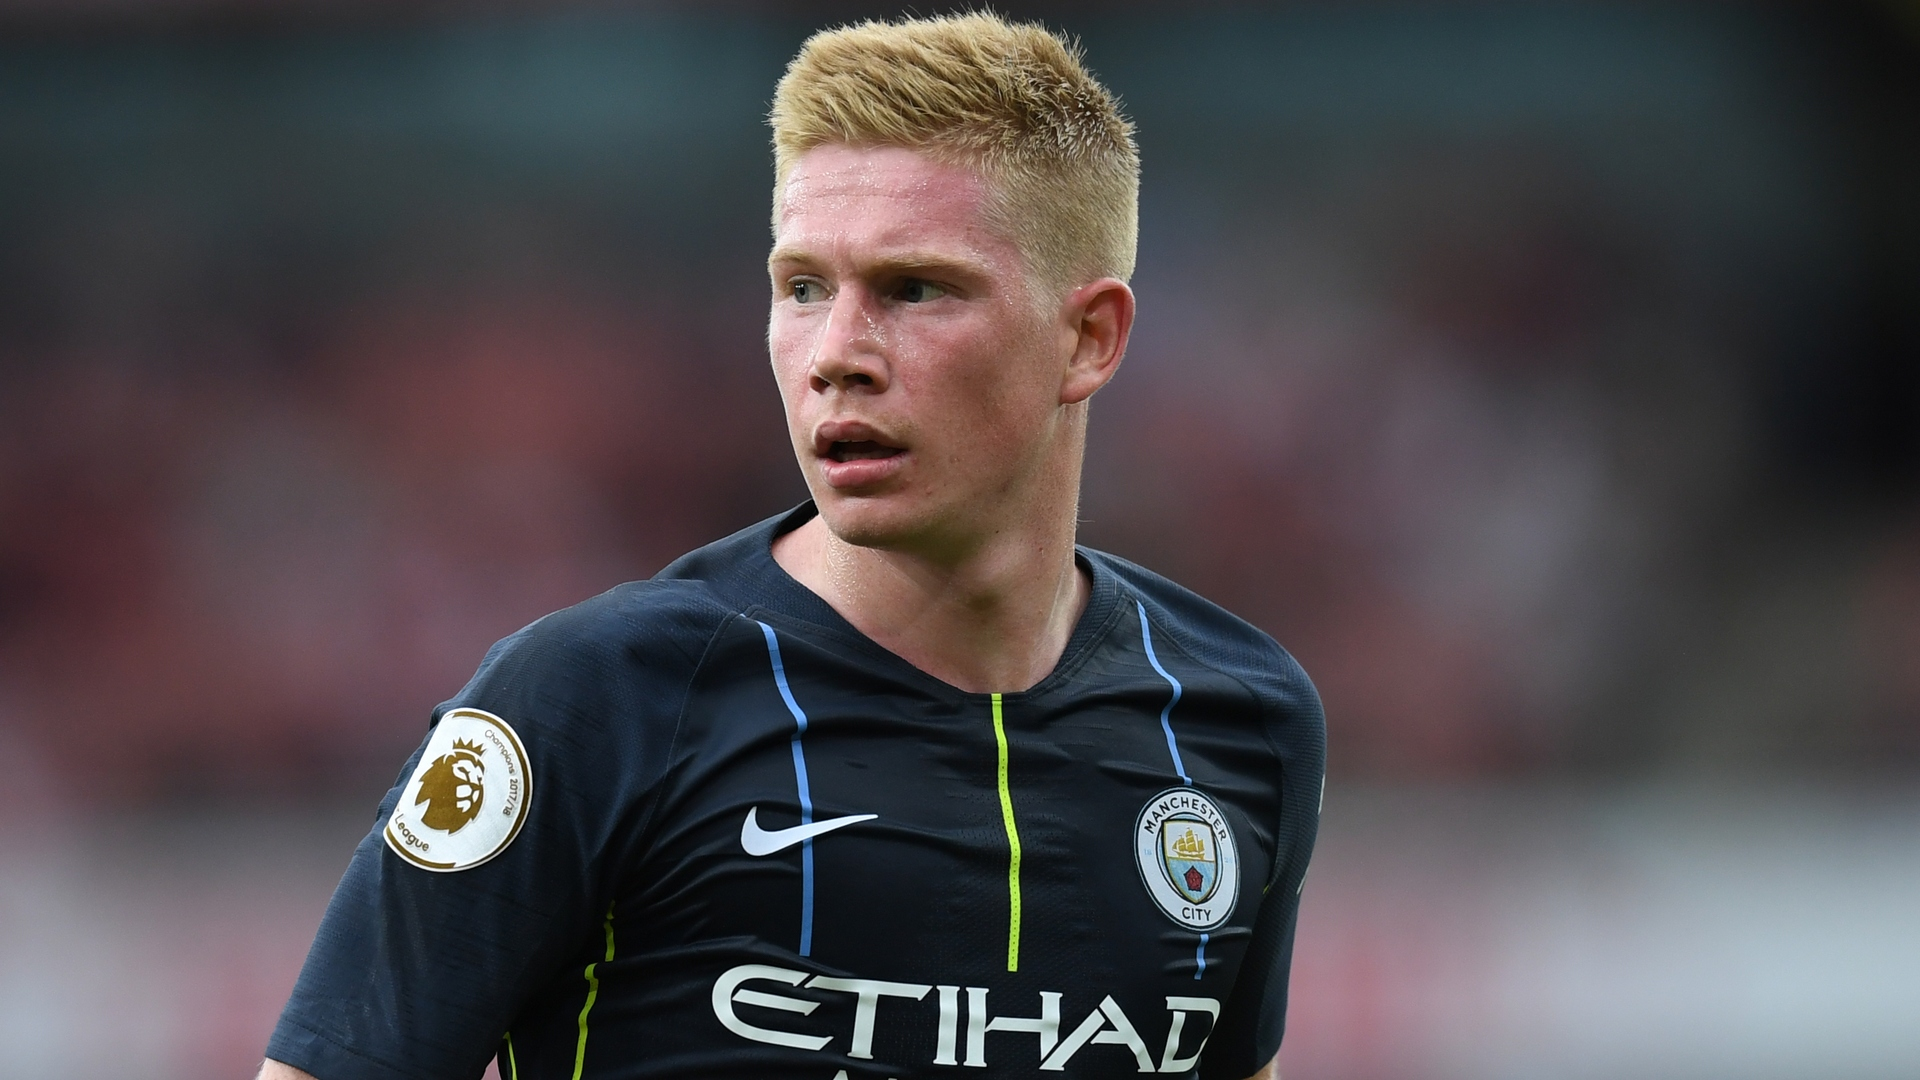 Kevin De Bruyne Injury Man City Midfielder Returns To Training Ahead Of Crunch Liverpool Clash Goal Com